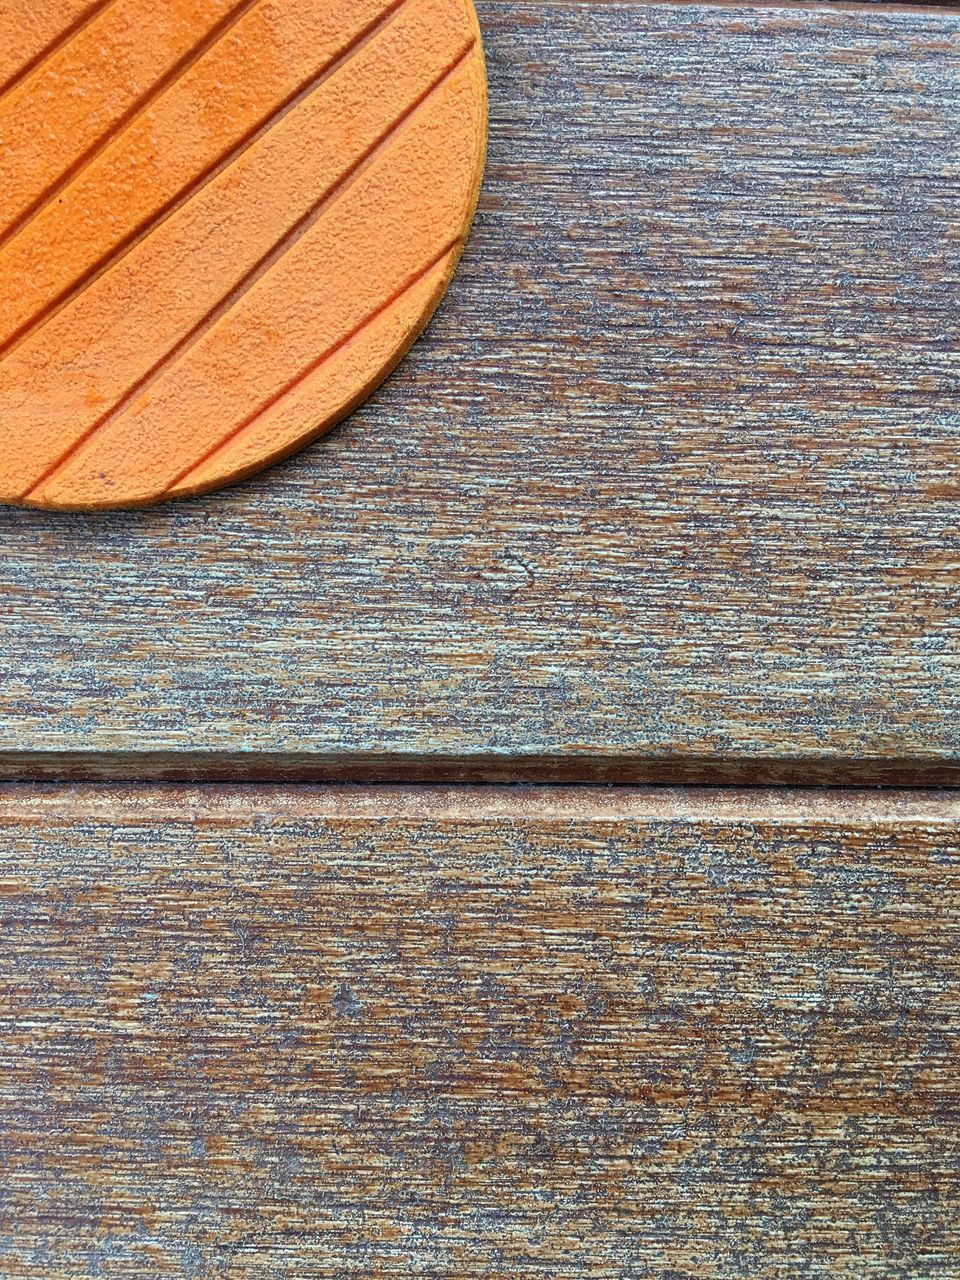 wood - material, no people, backgrounds, textured, full frame, close-up, day, outdoors